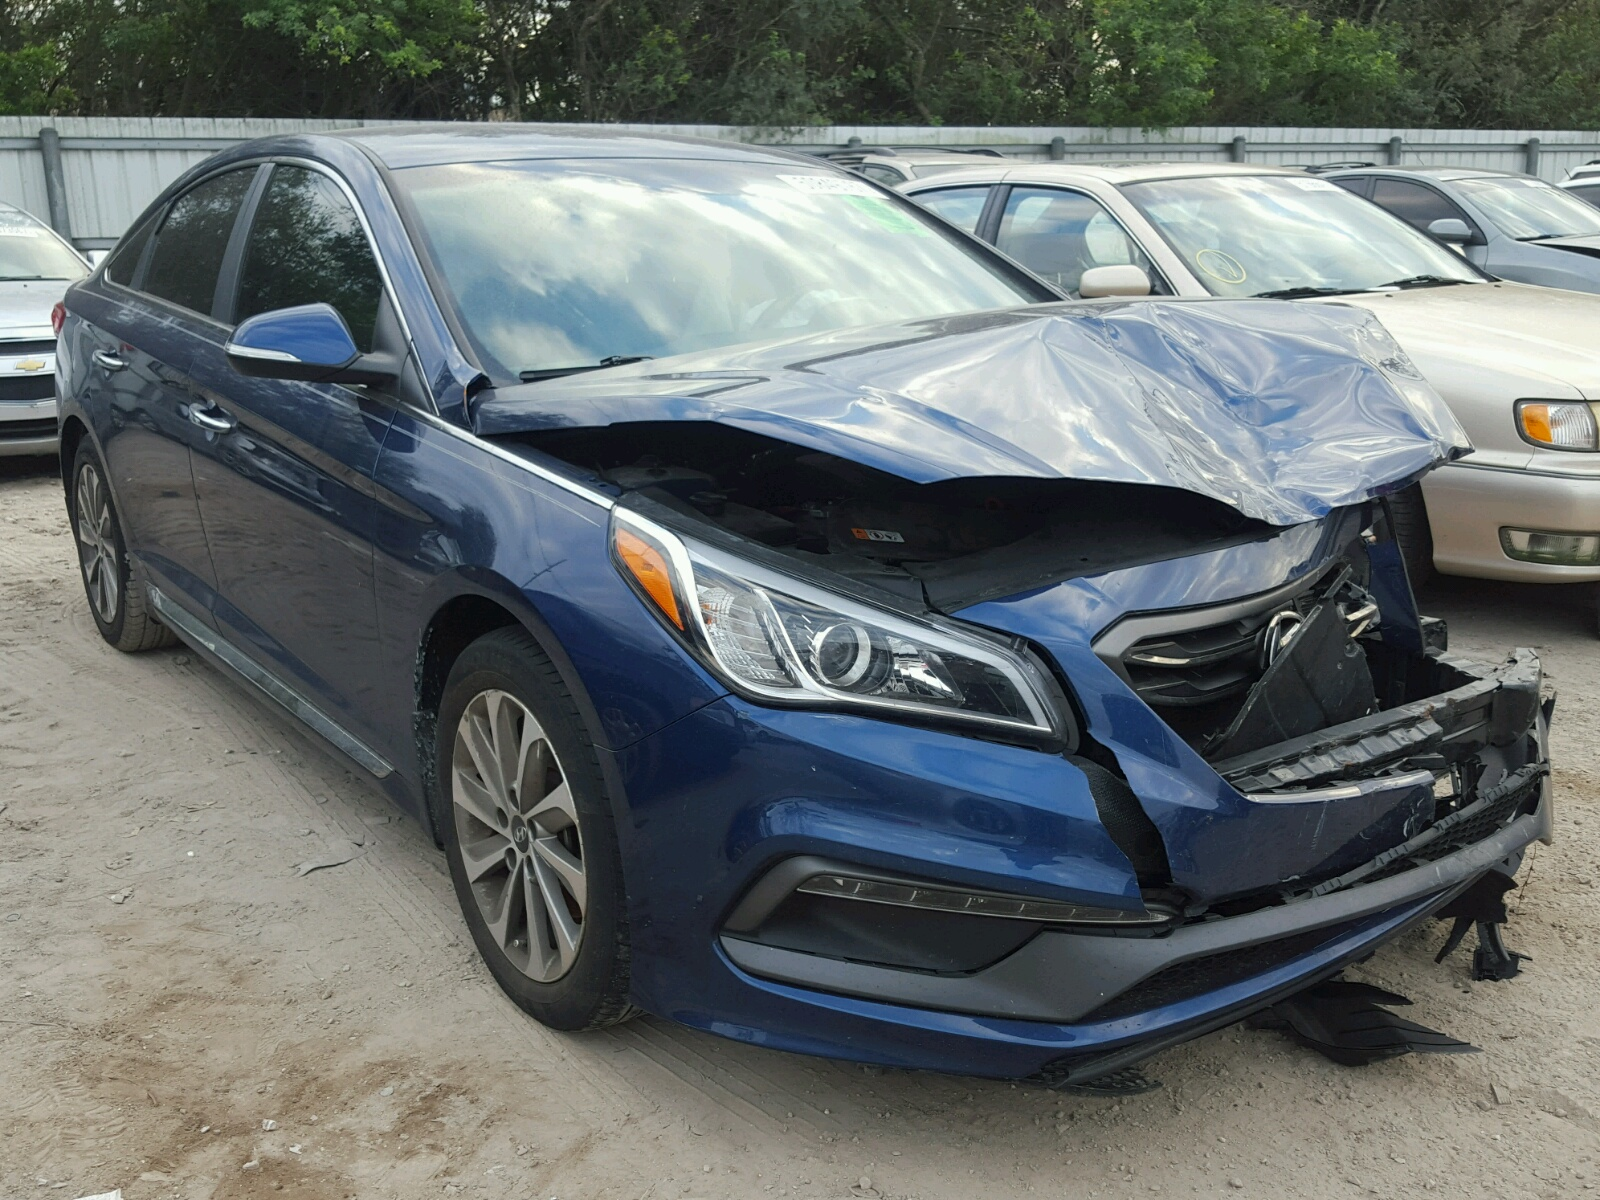 online auctions salvage auto se sc sonata lot en in view copart of carfinder title greer sale on cert red right hyundai